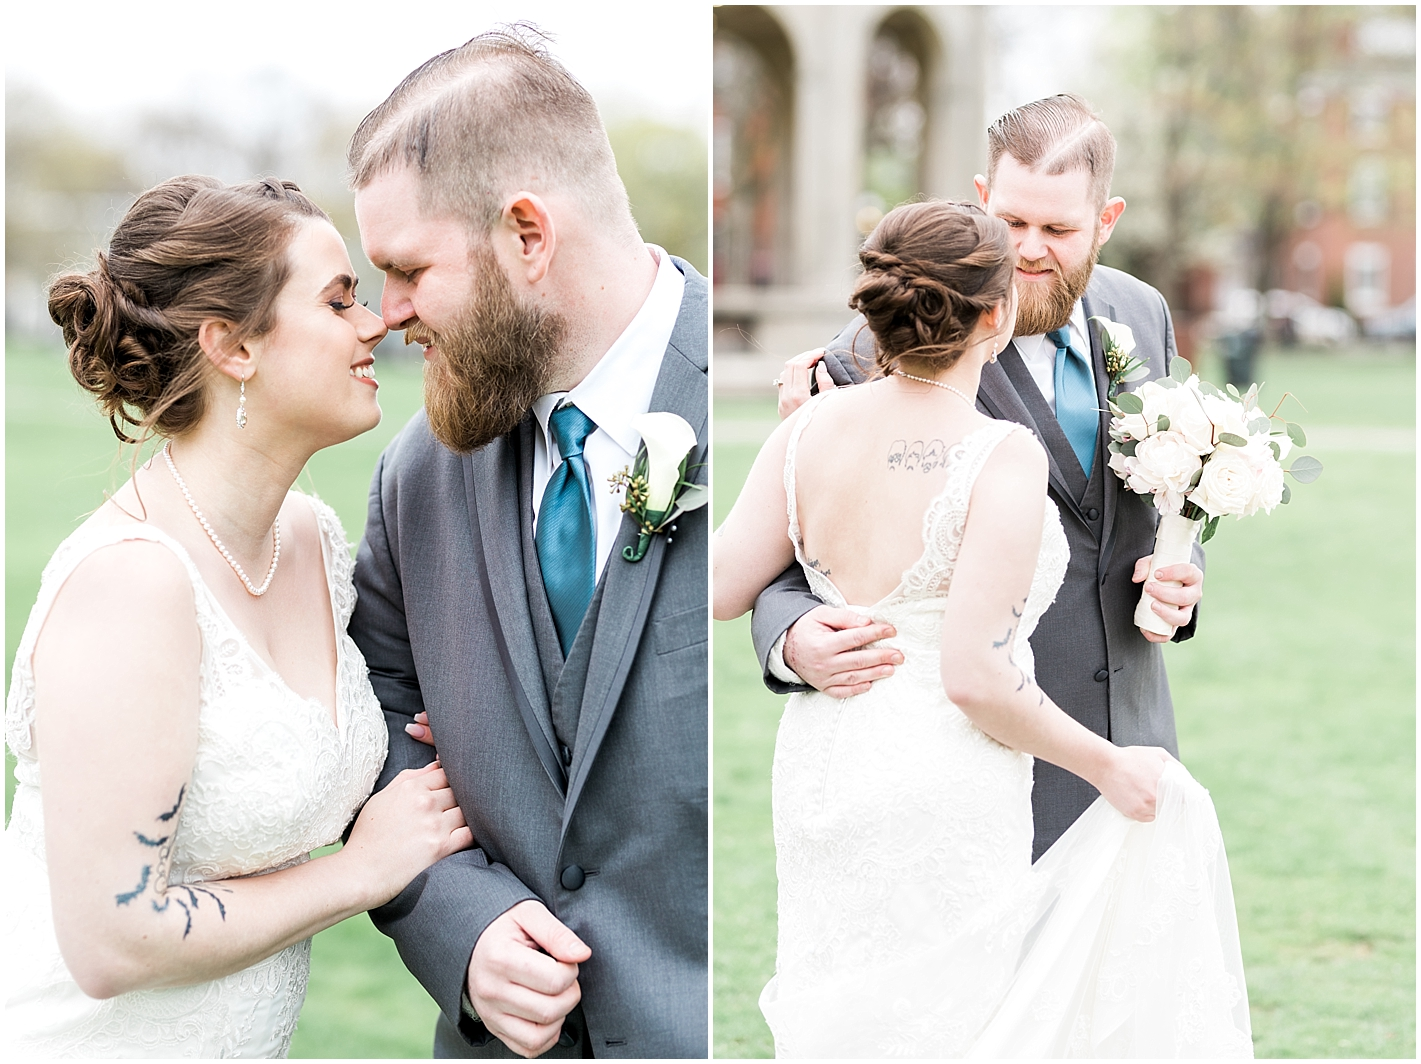 Low Back Bridal Gown Photos By Alyssa Parker Photography